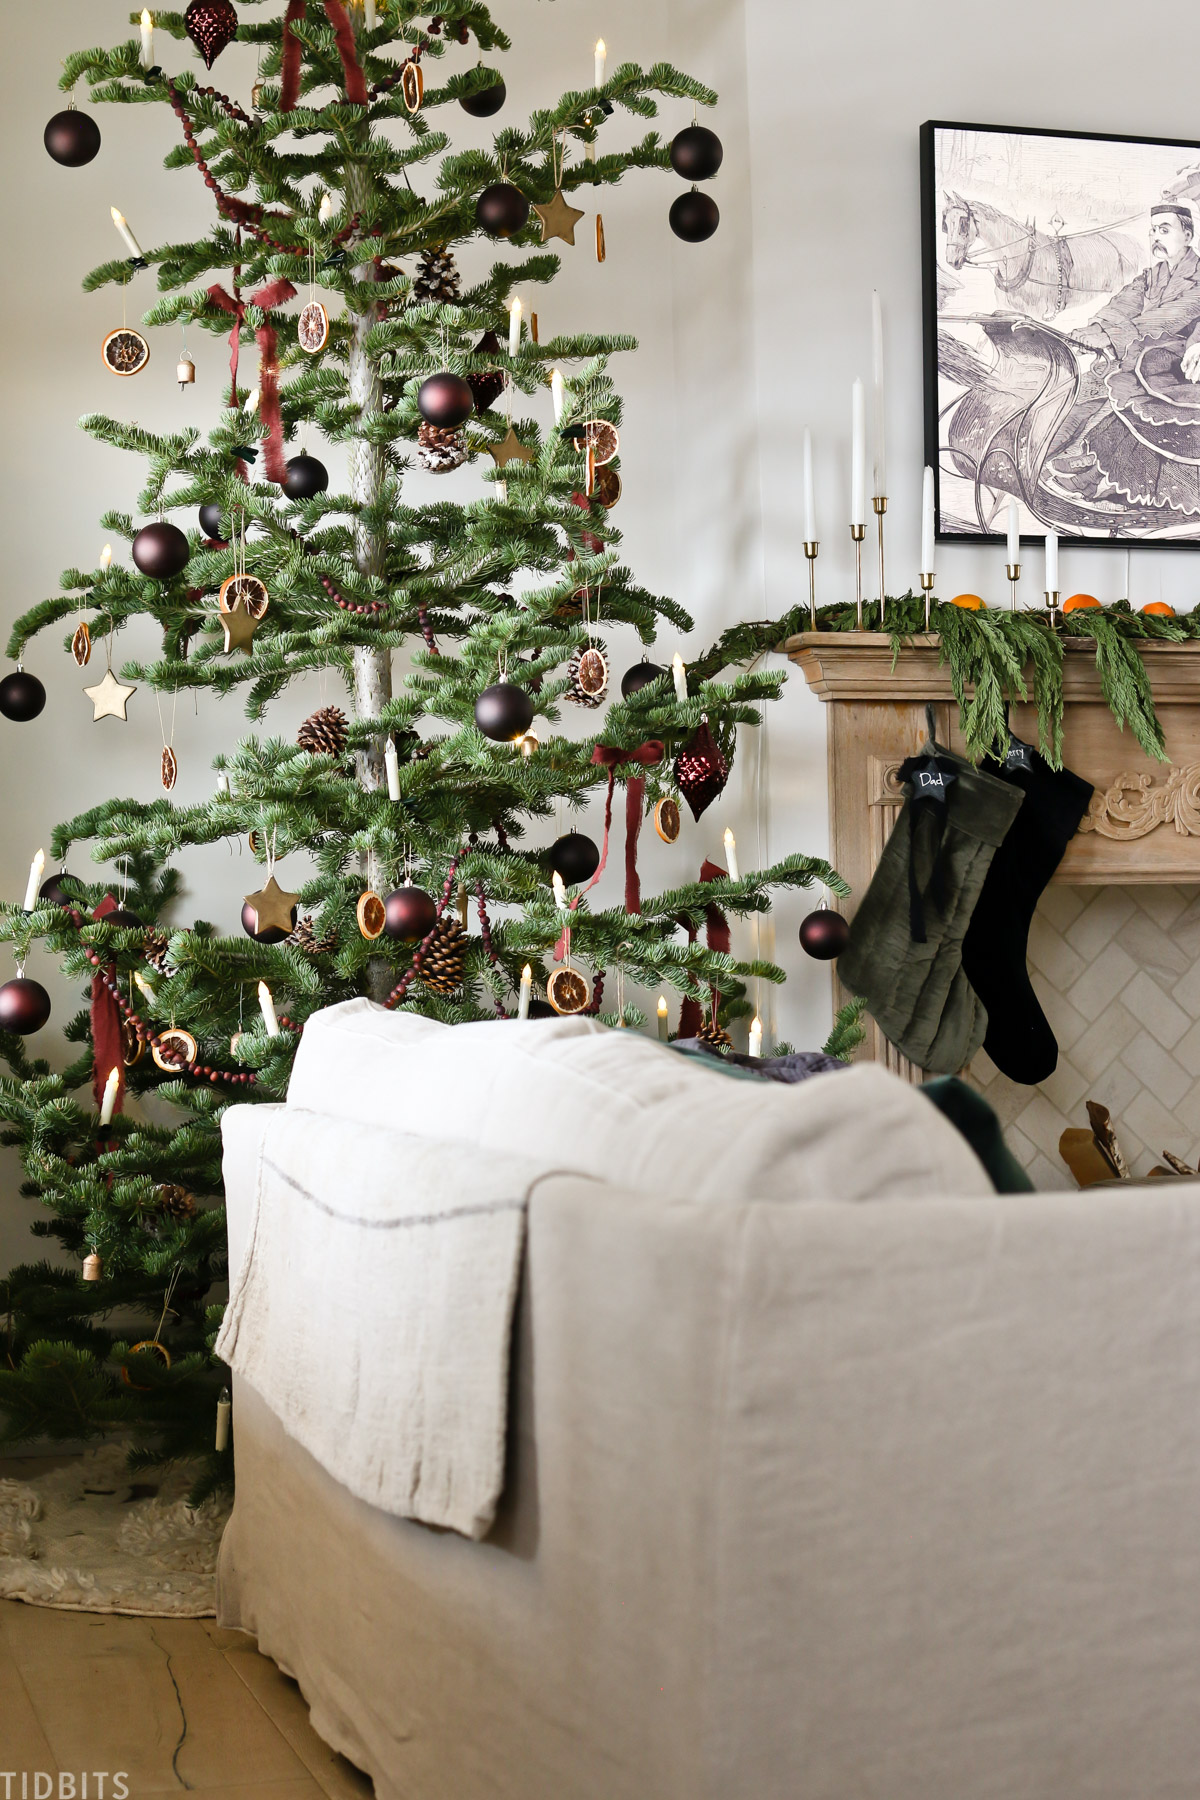 couch next to European Old World style Christmas tree